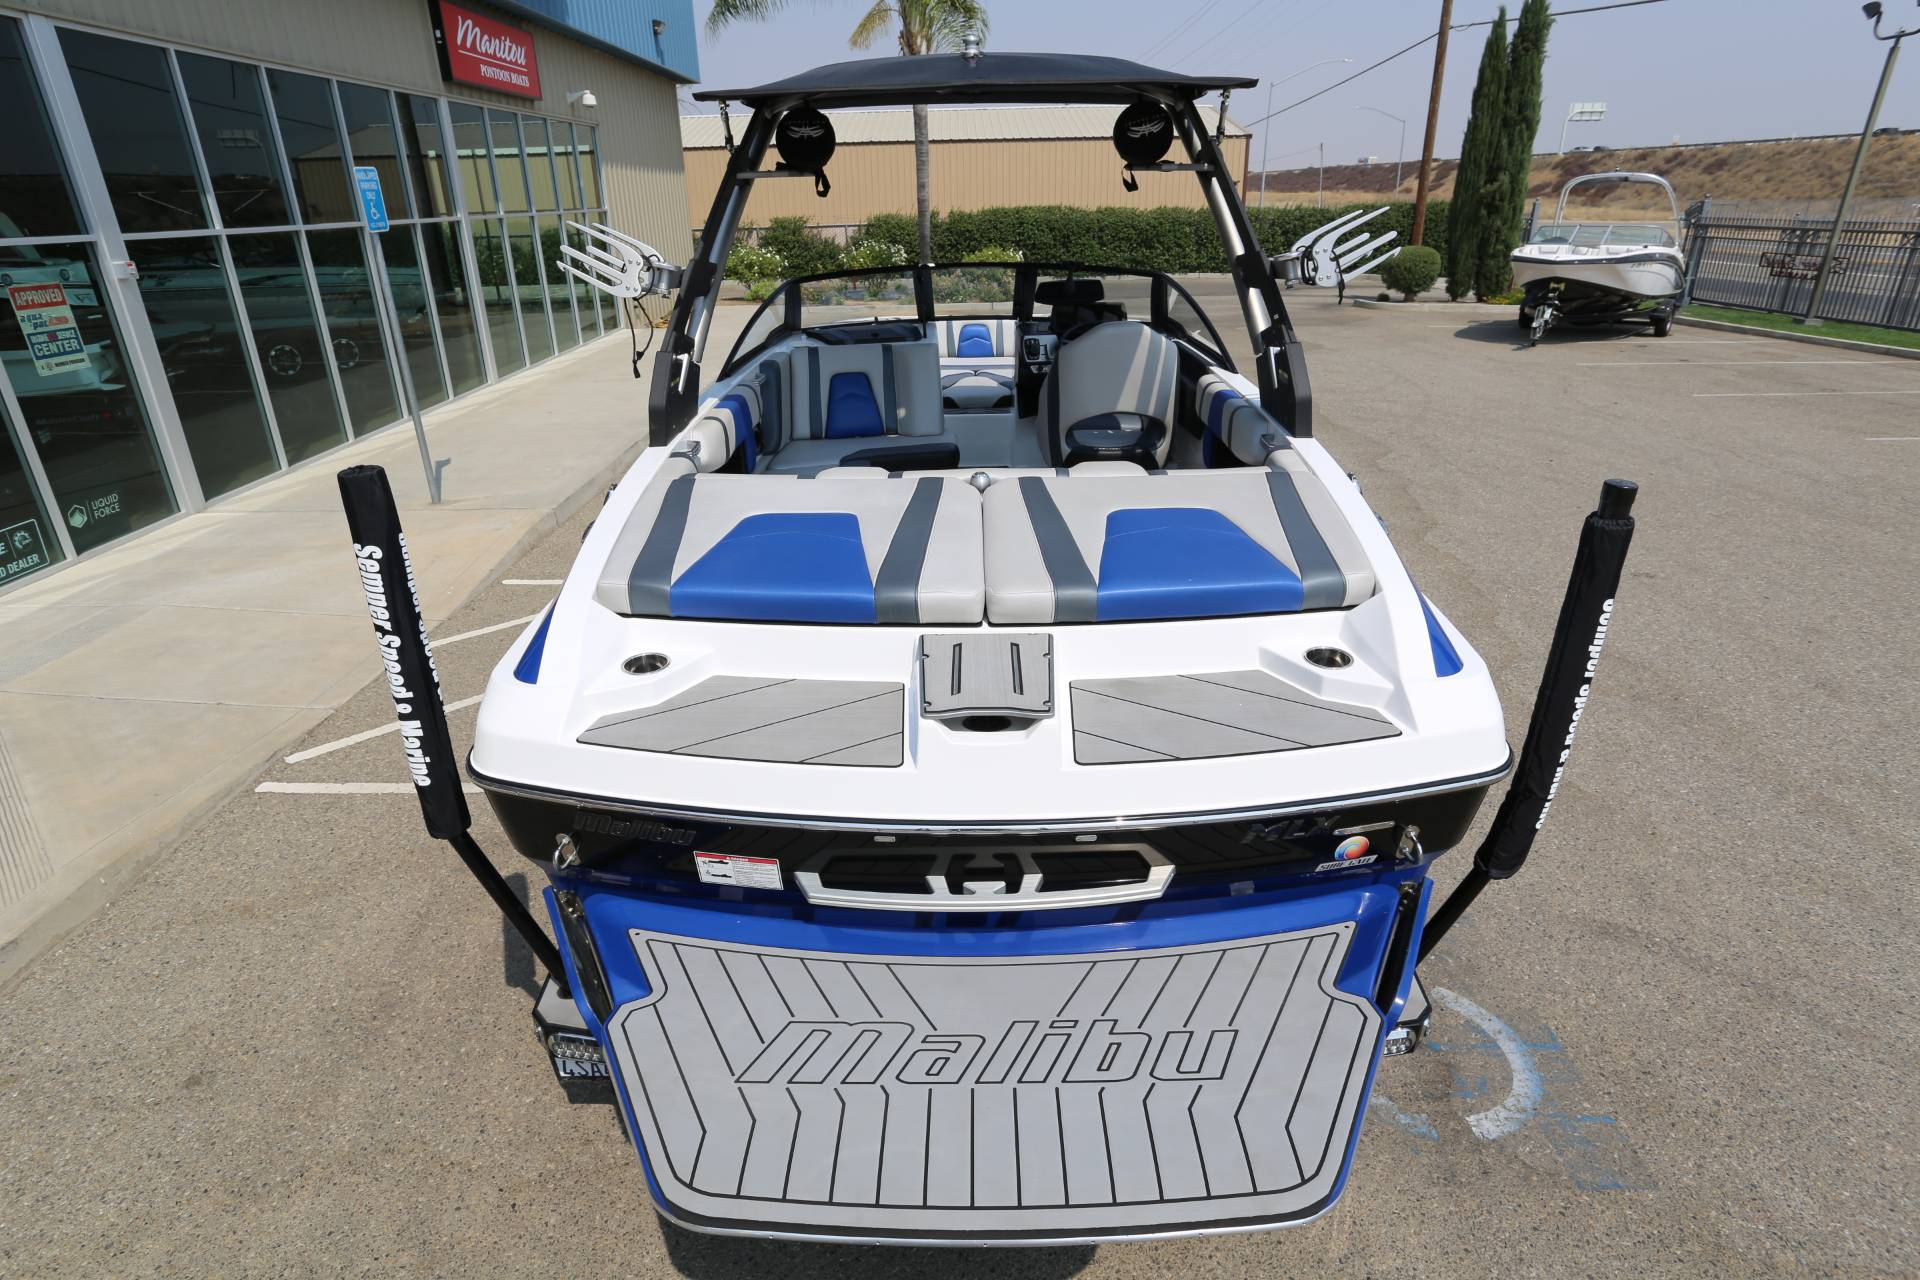 2018 Malibu 21 MLX in Madera, California - Photo 5